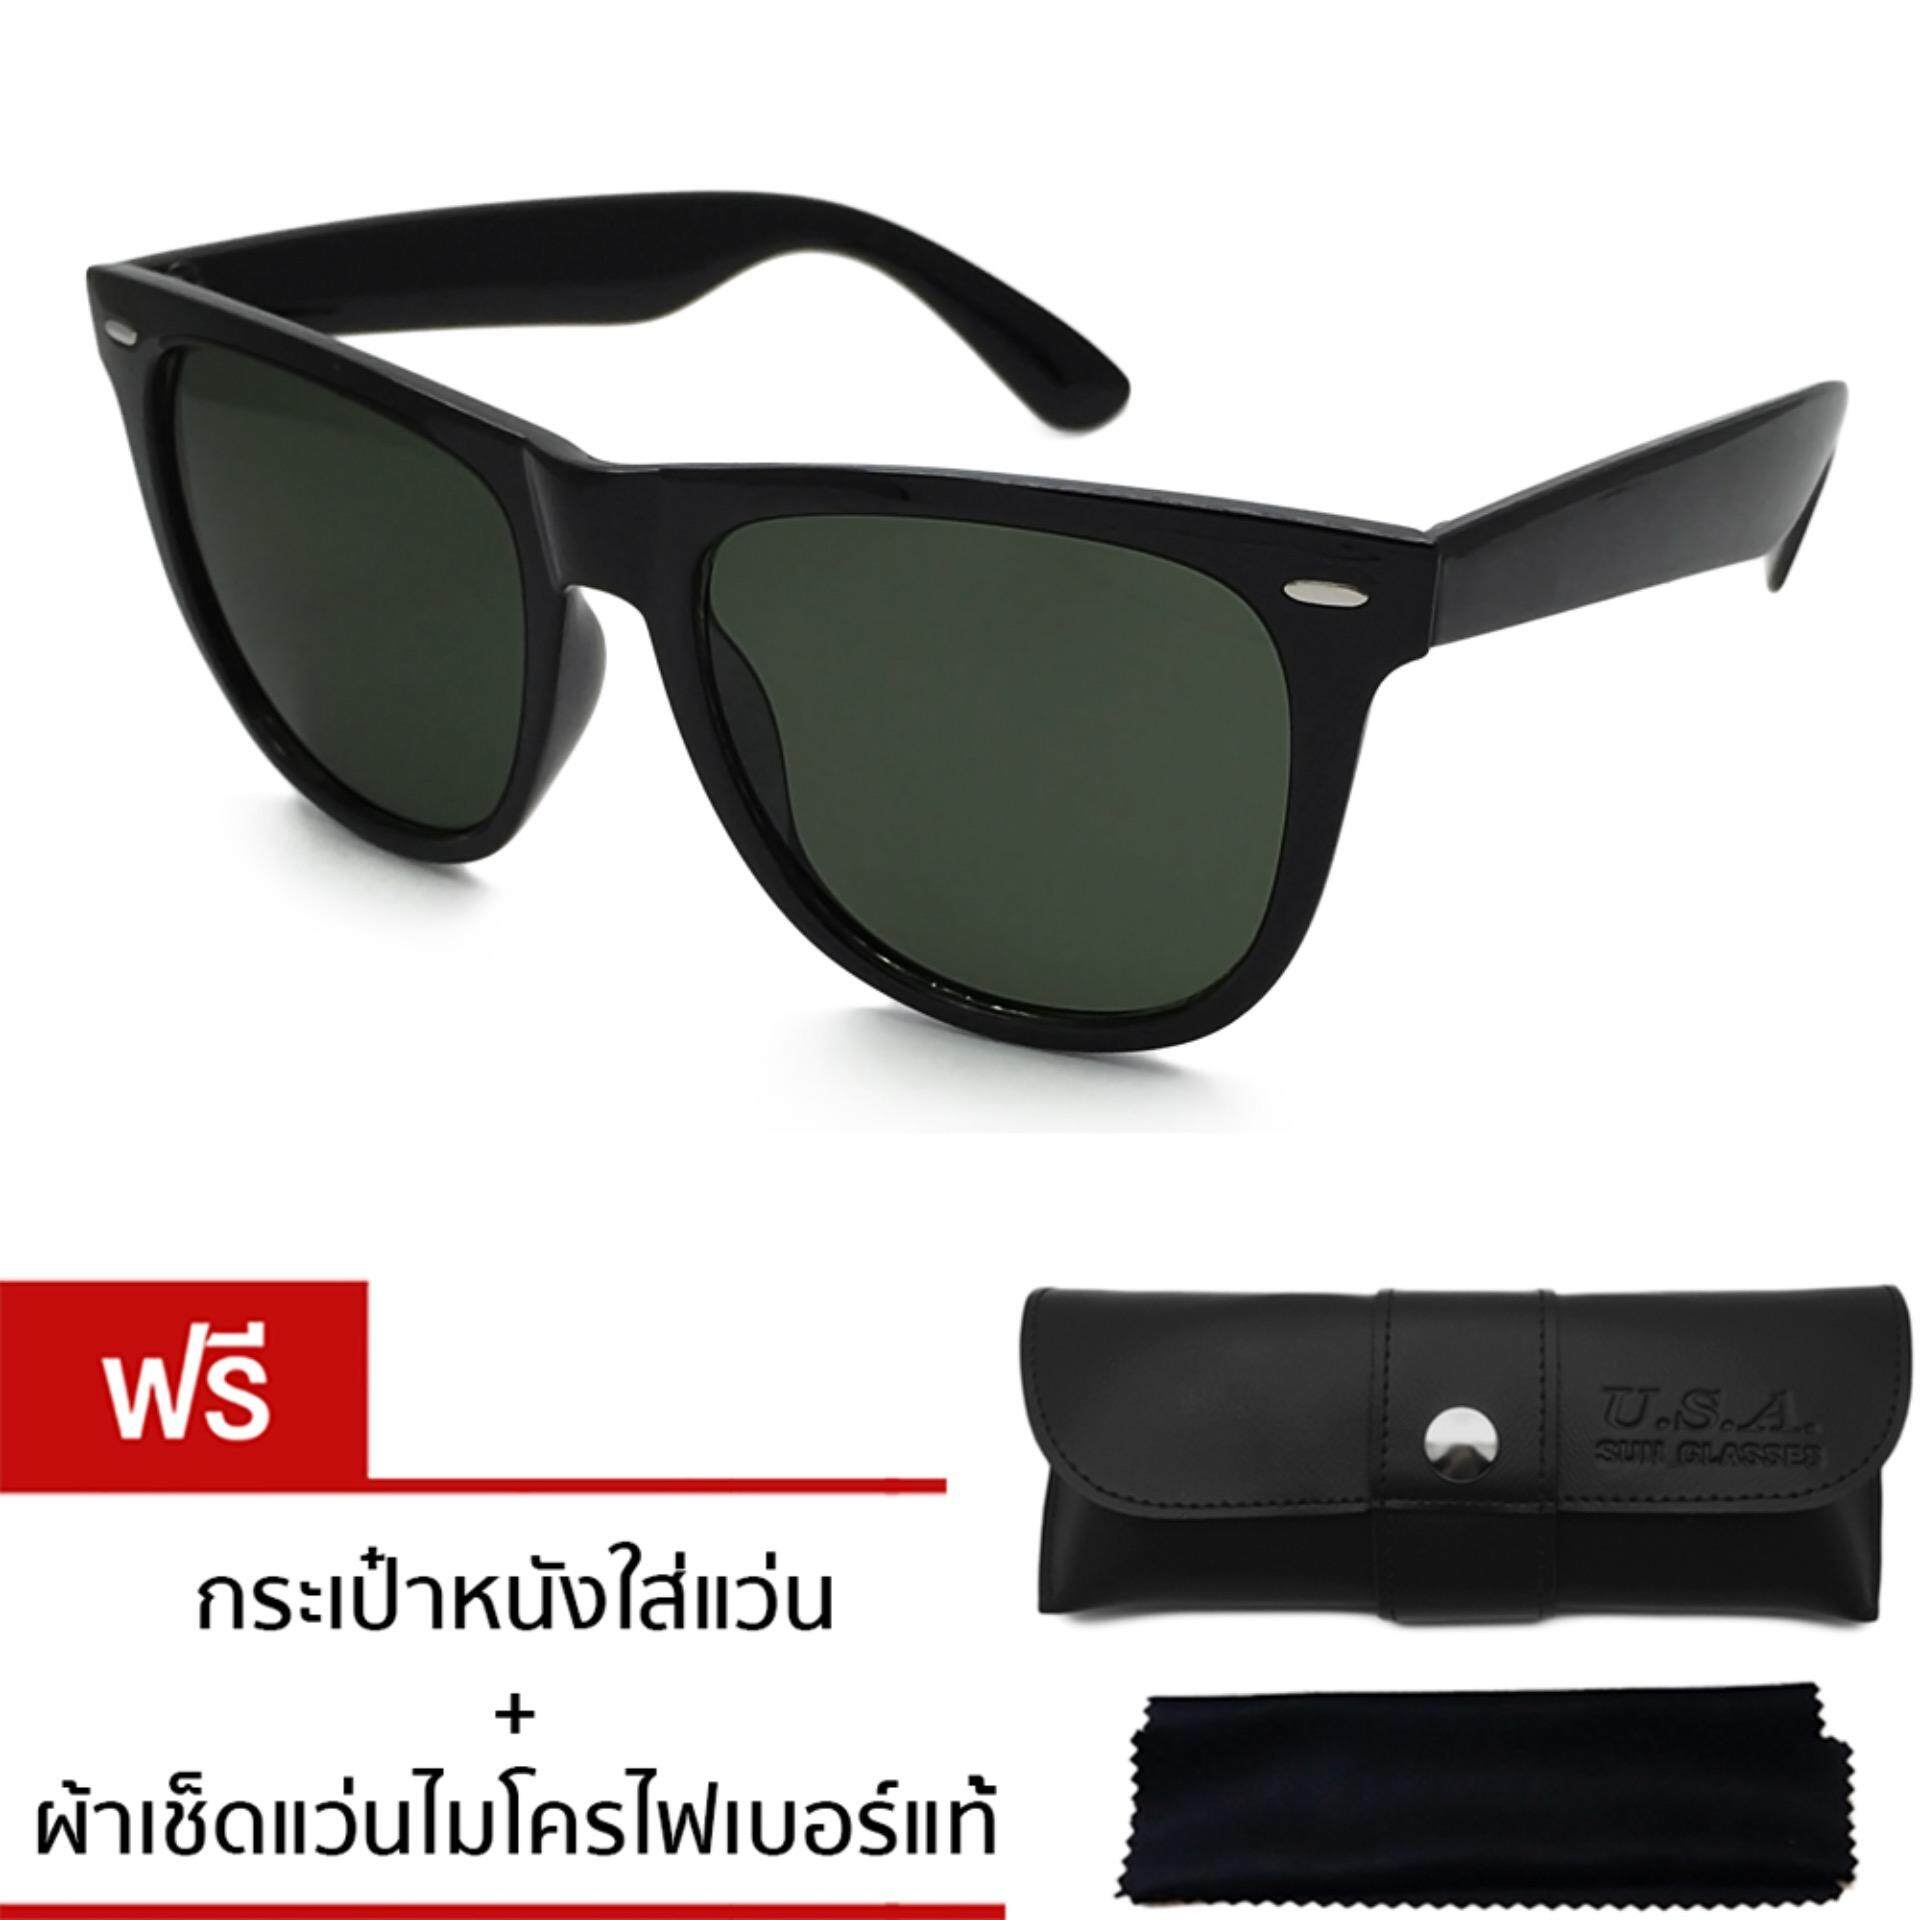 VINTAGE GLASSES  Wayfarer Sunglasses Original แว่นตากันแดดWayfarer รุ่น 2140-54 mm. (Black)